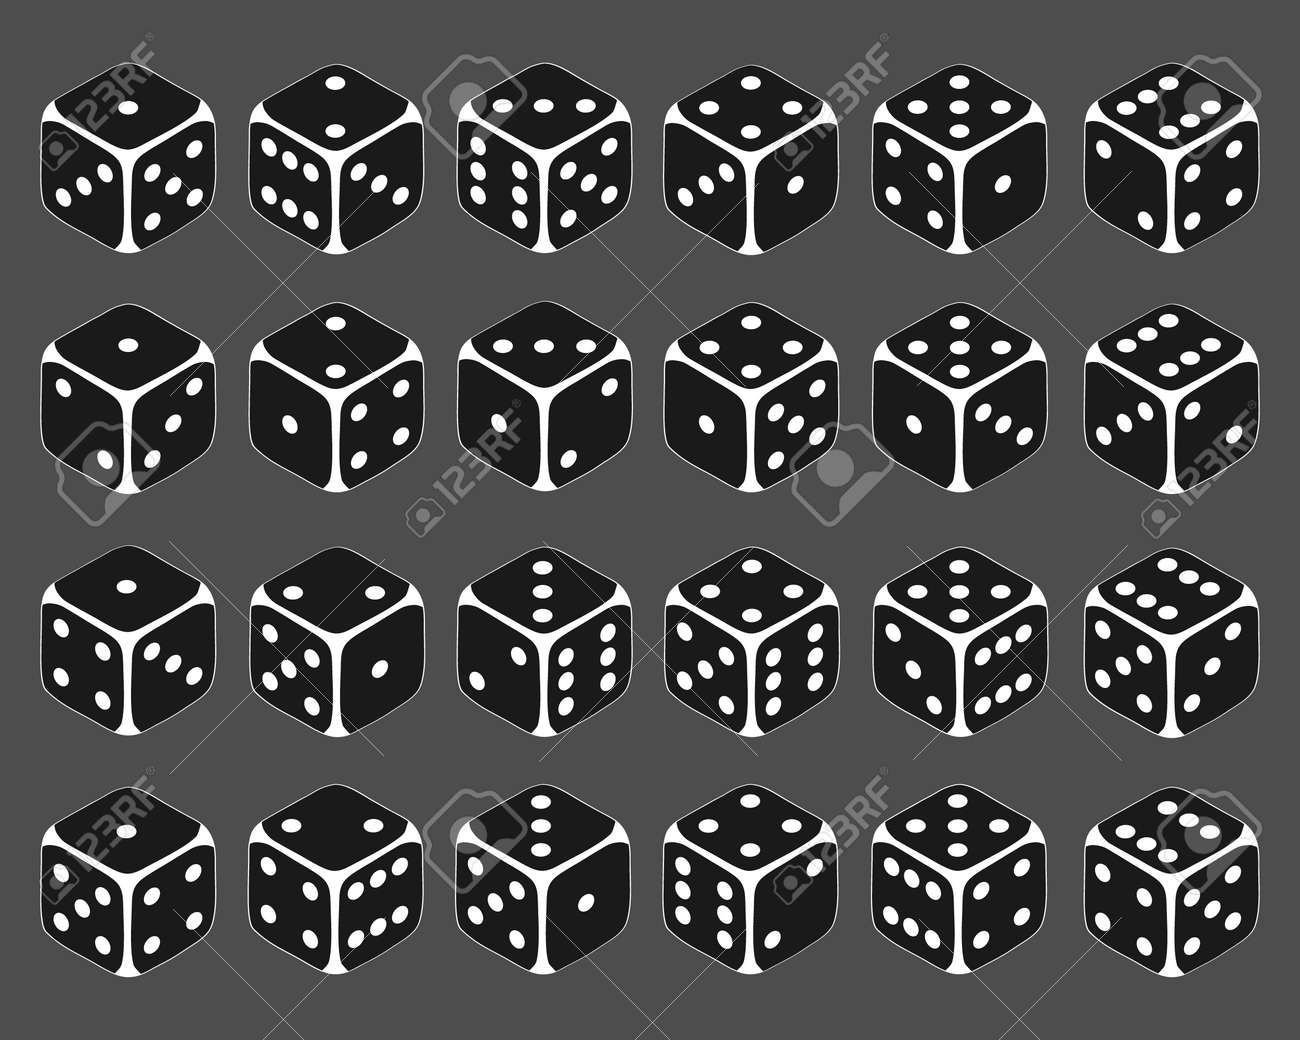 Dice, large set of dice in isometric view. Vector cartoon illustration. Vector. - 167579135